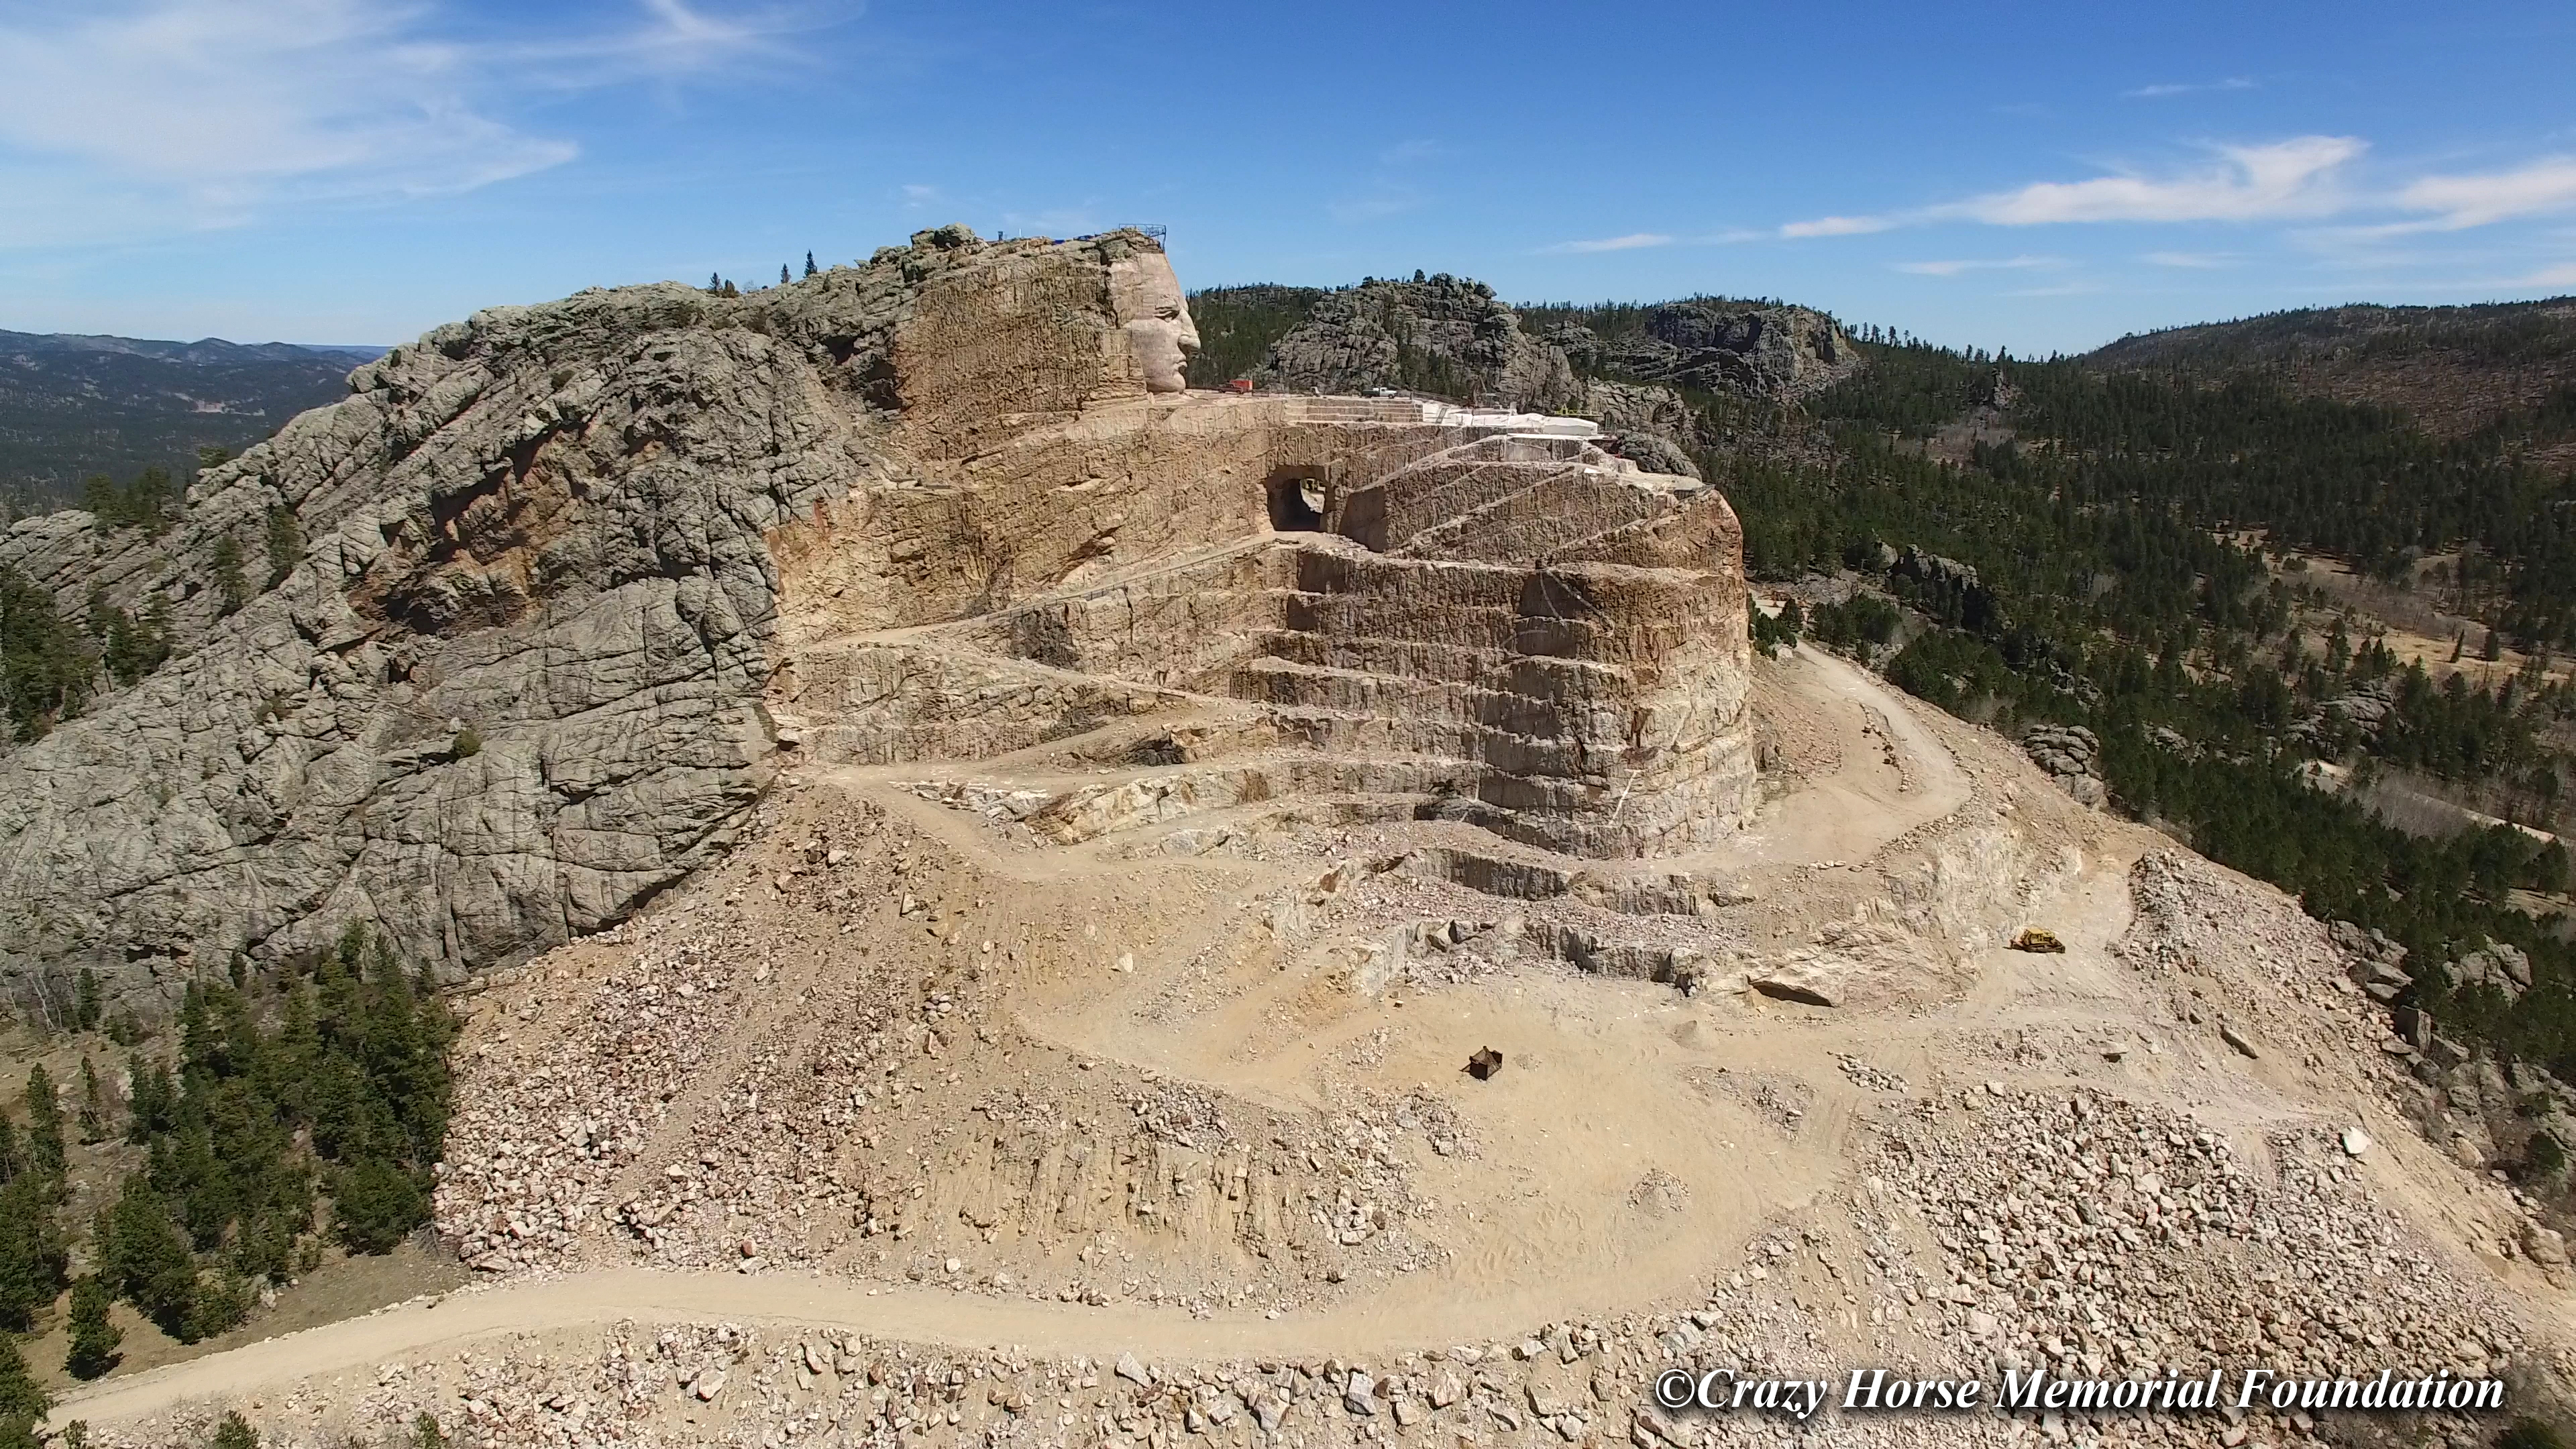 Building A Legacy For Native Americans The Story Of Crazy Horse Black Hills Travel Blog